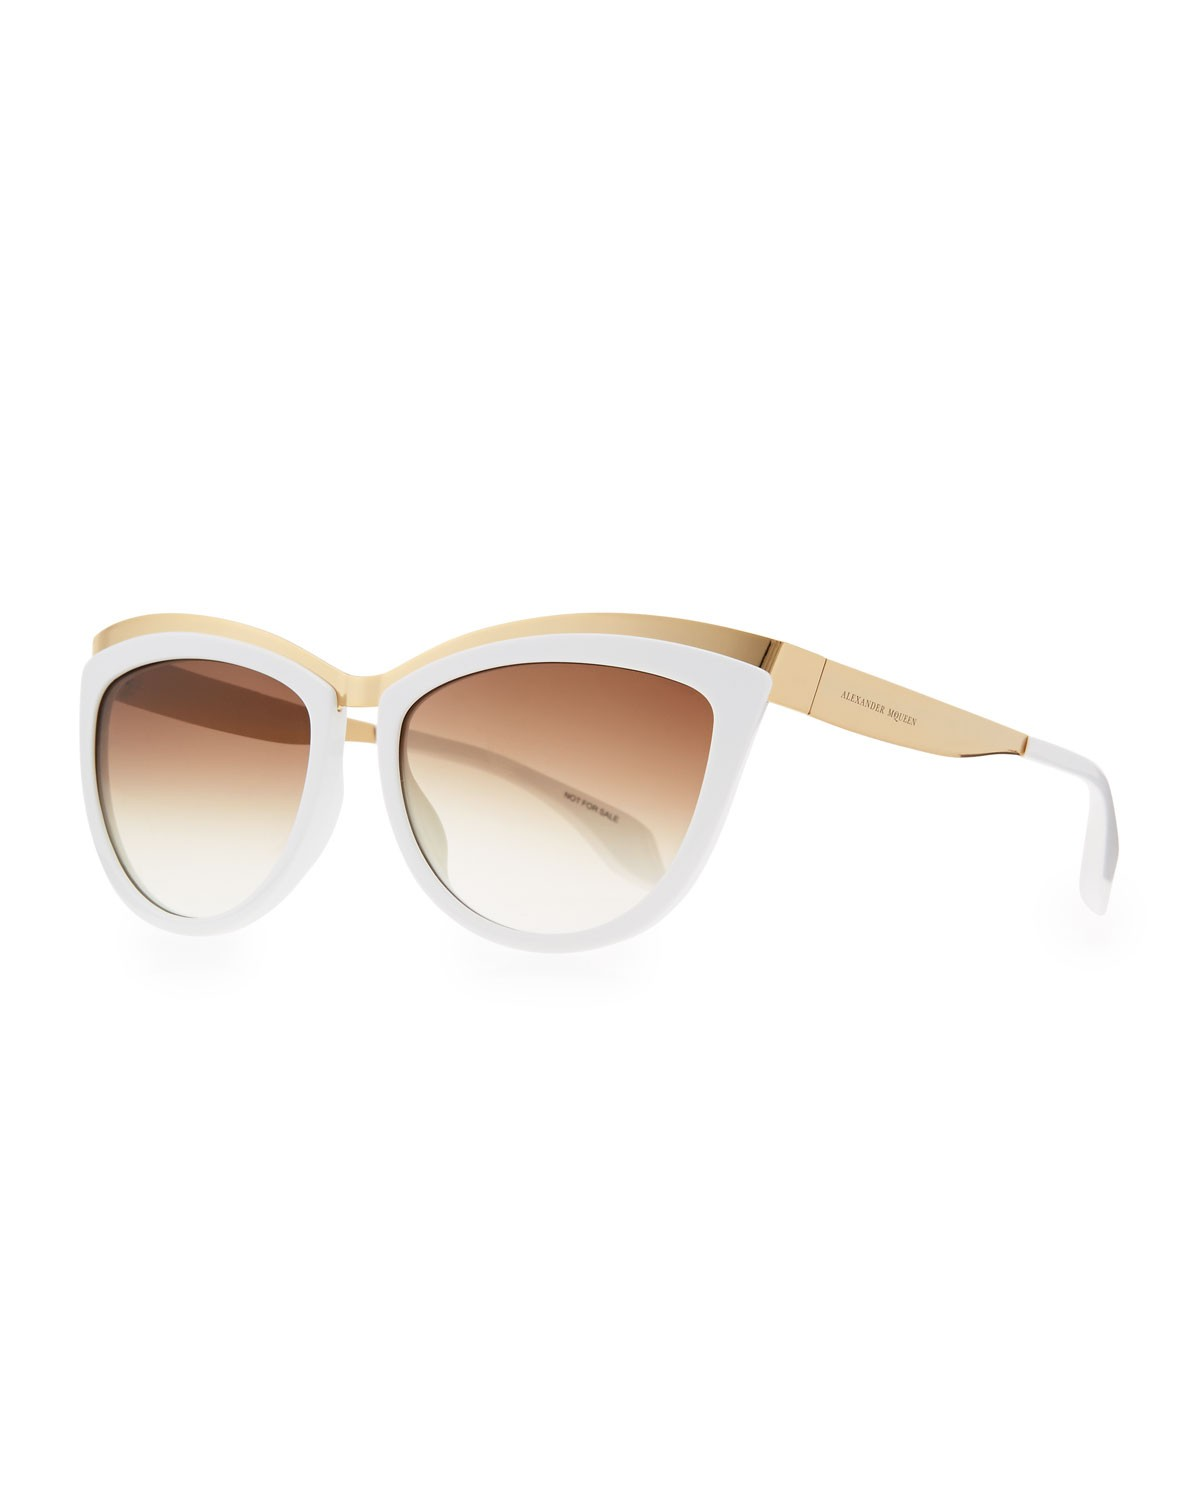 Colorblock Cat-Eye Sunglasses, White/Gold - Alexander McQueen - White